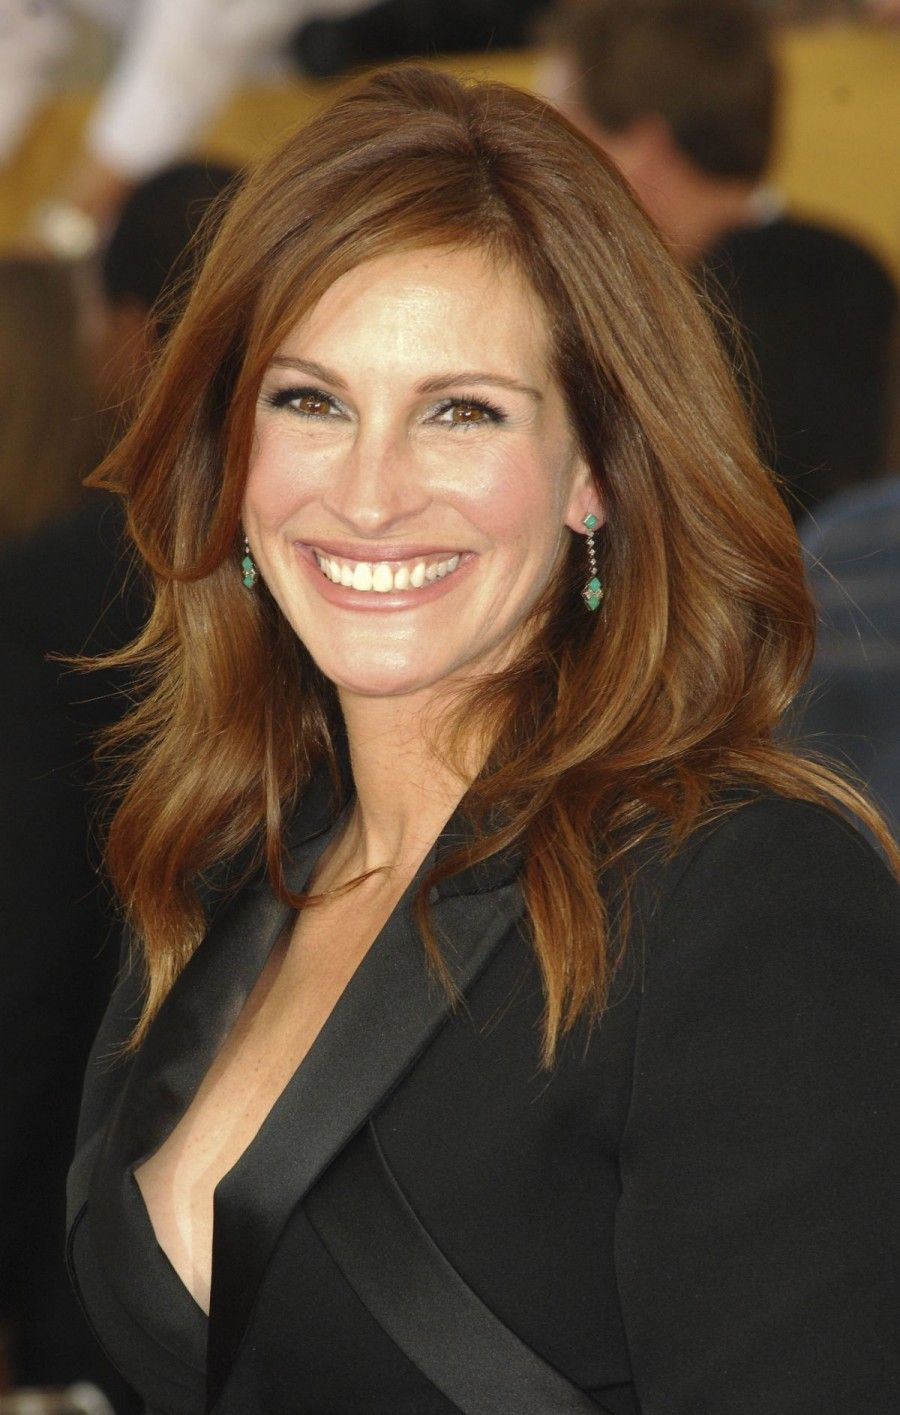 julia-roberts-at-2015-screen-actor-guild-awards-in-los-angeles_1